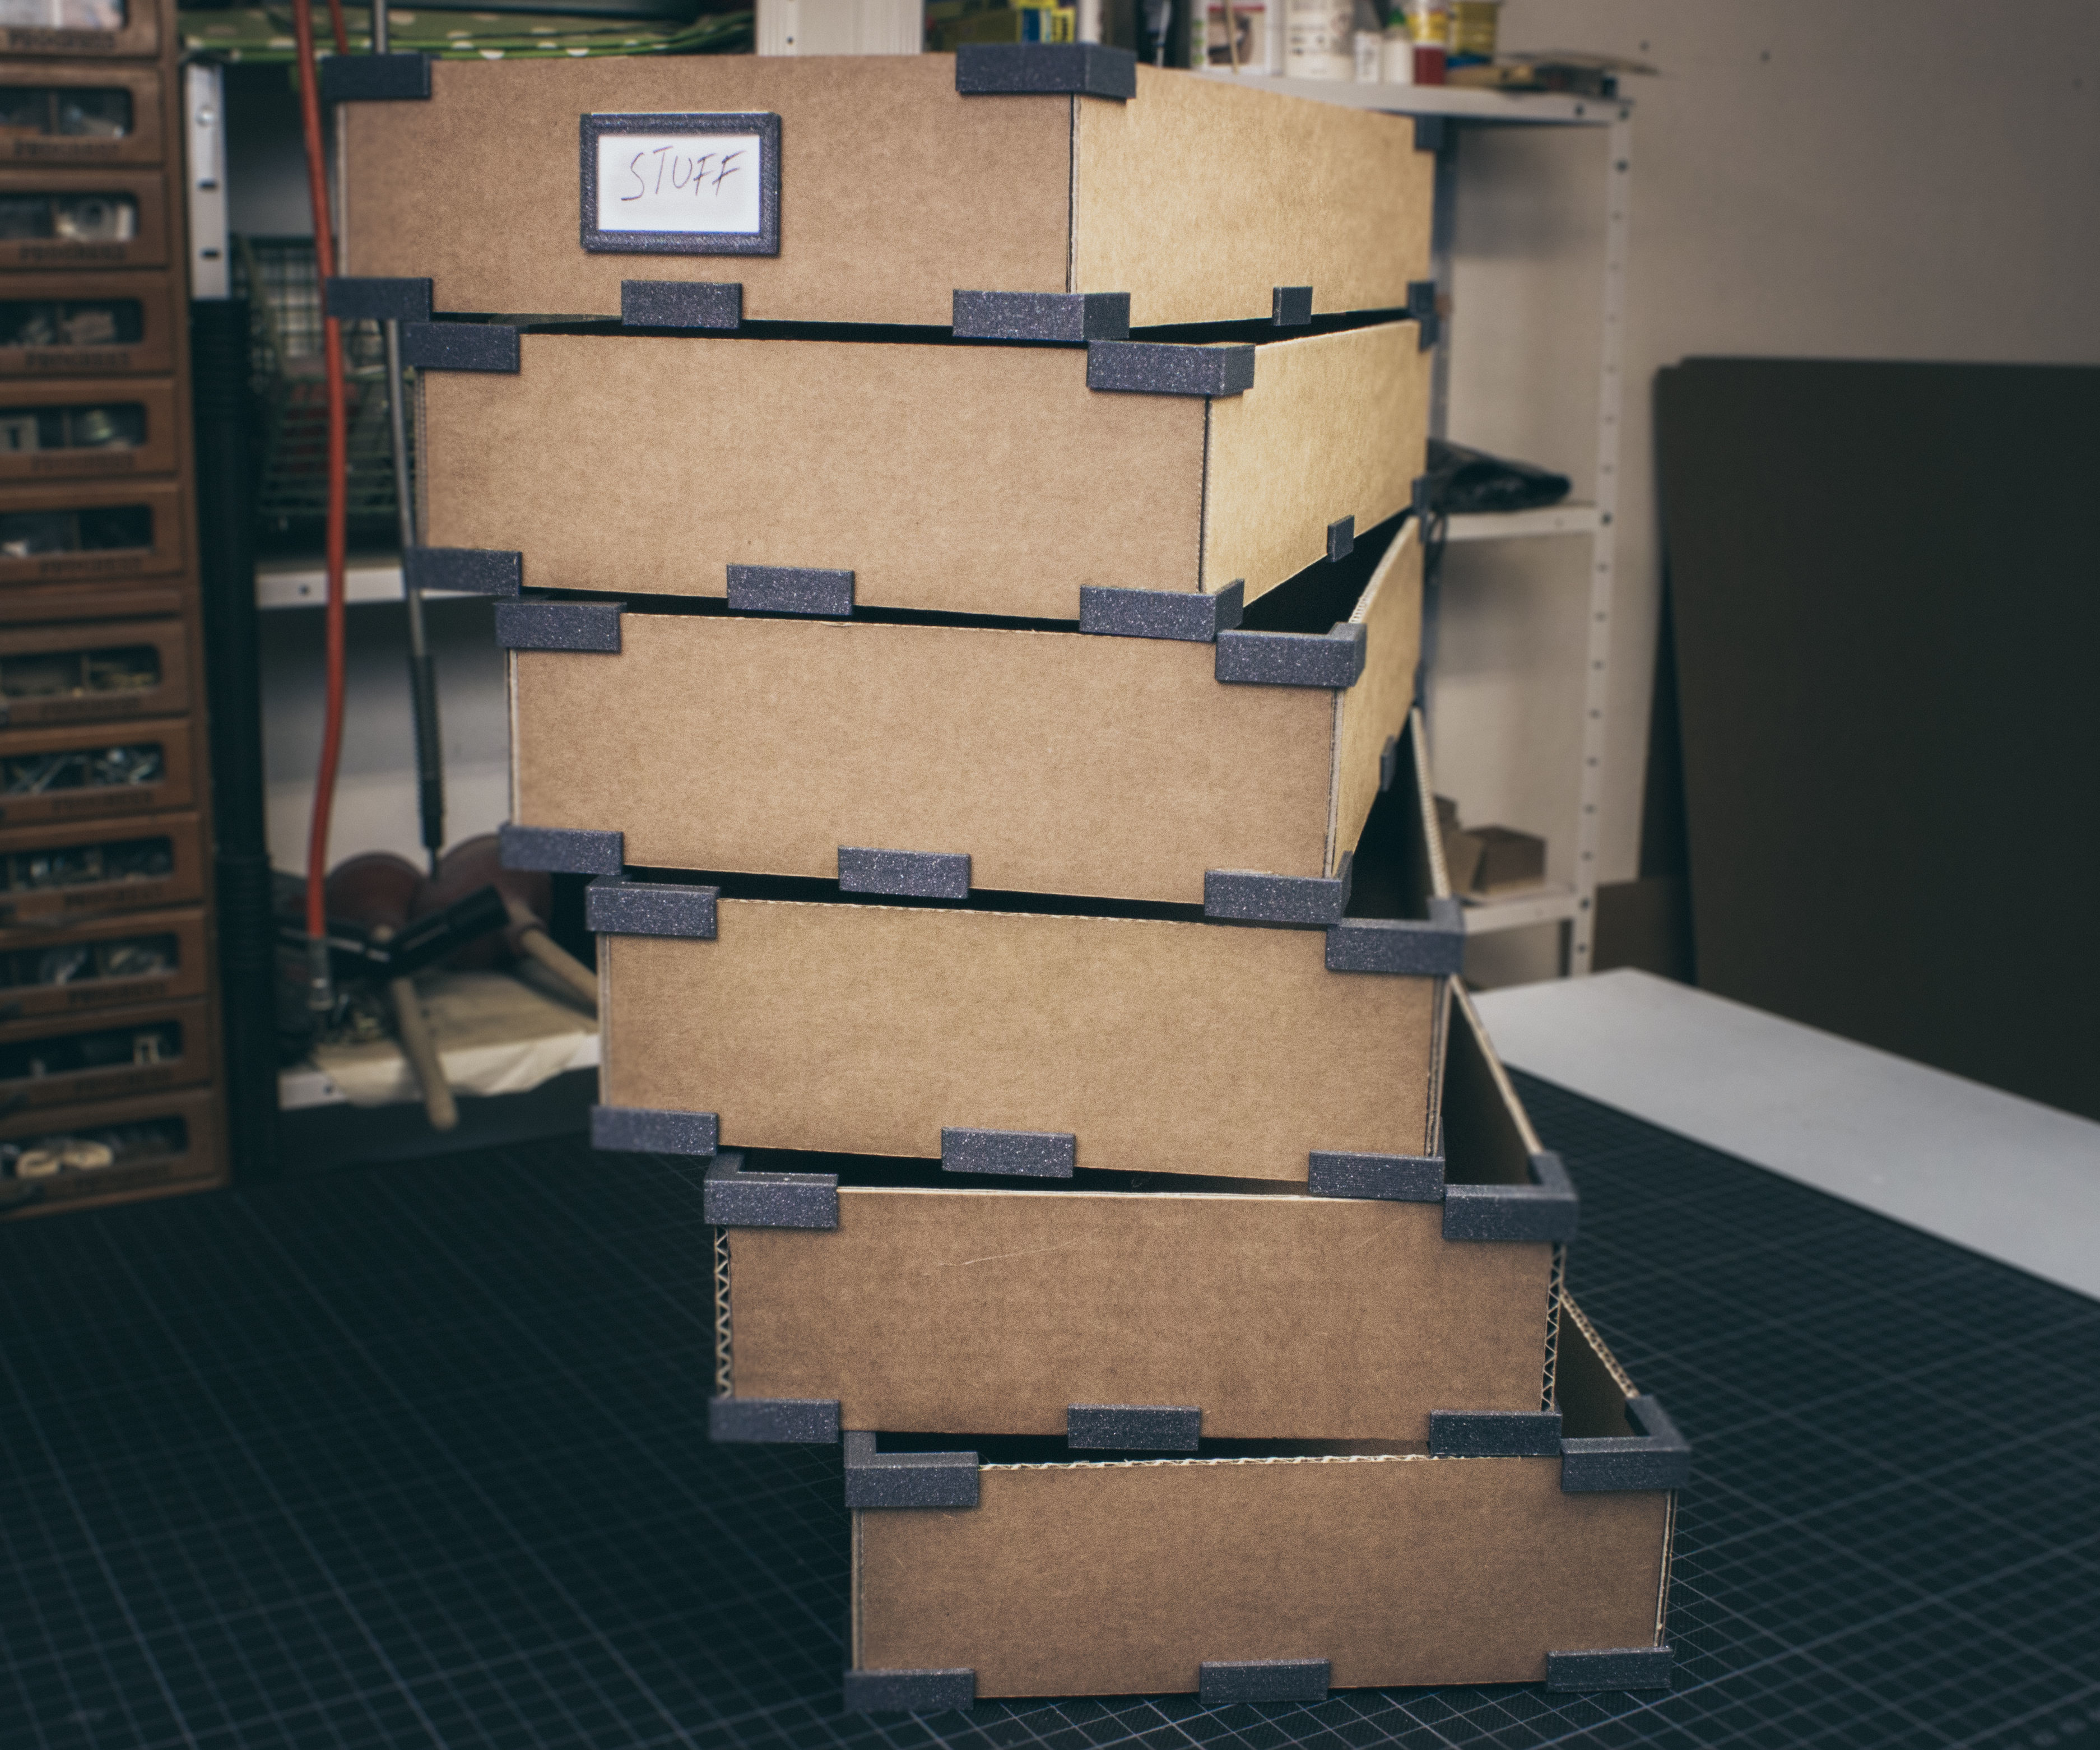 Storage Boxes Made Out of Cardboard and 3D Printed Parts